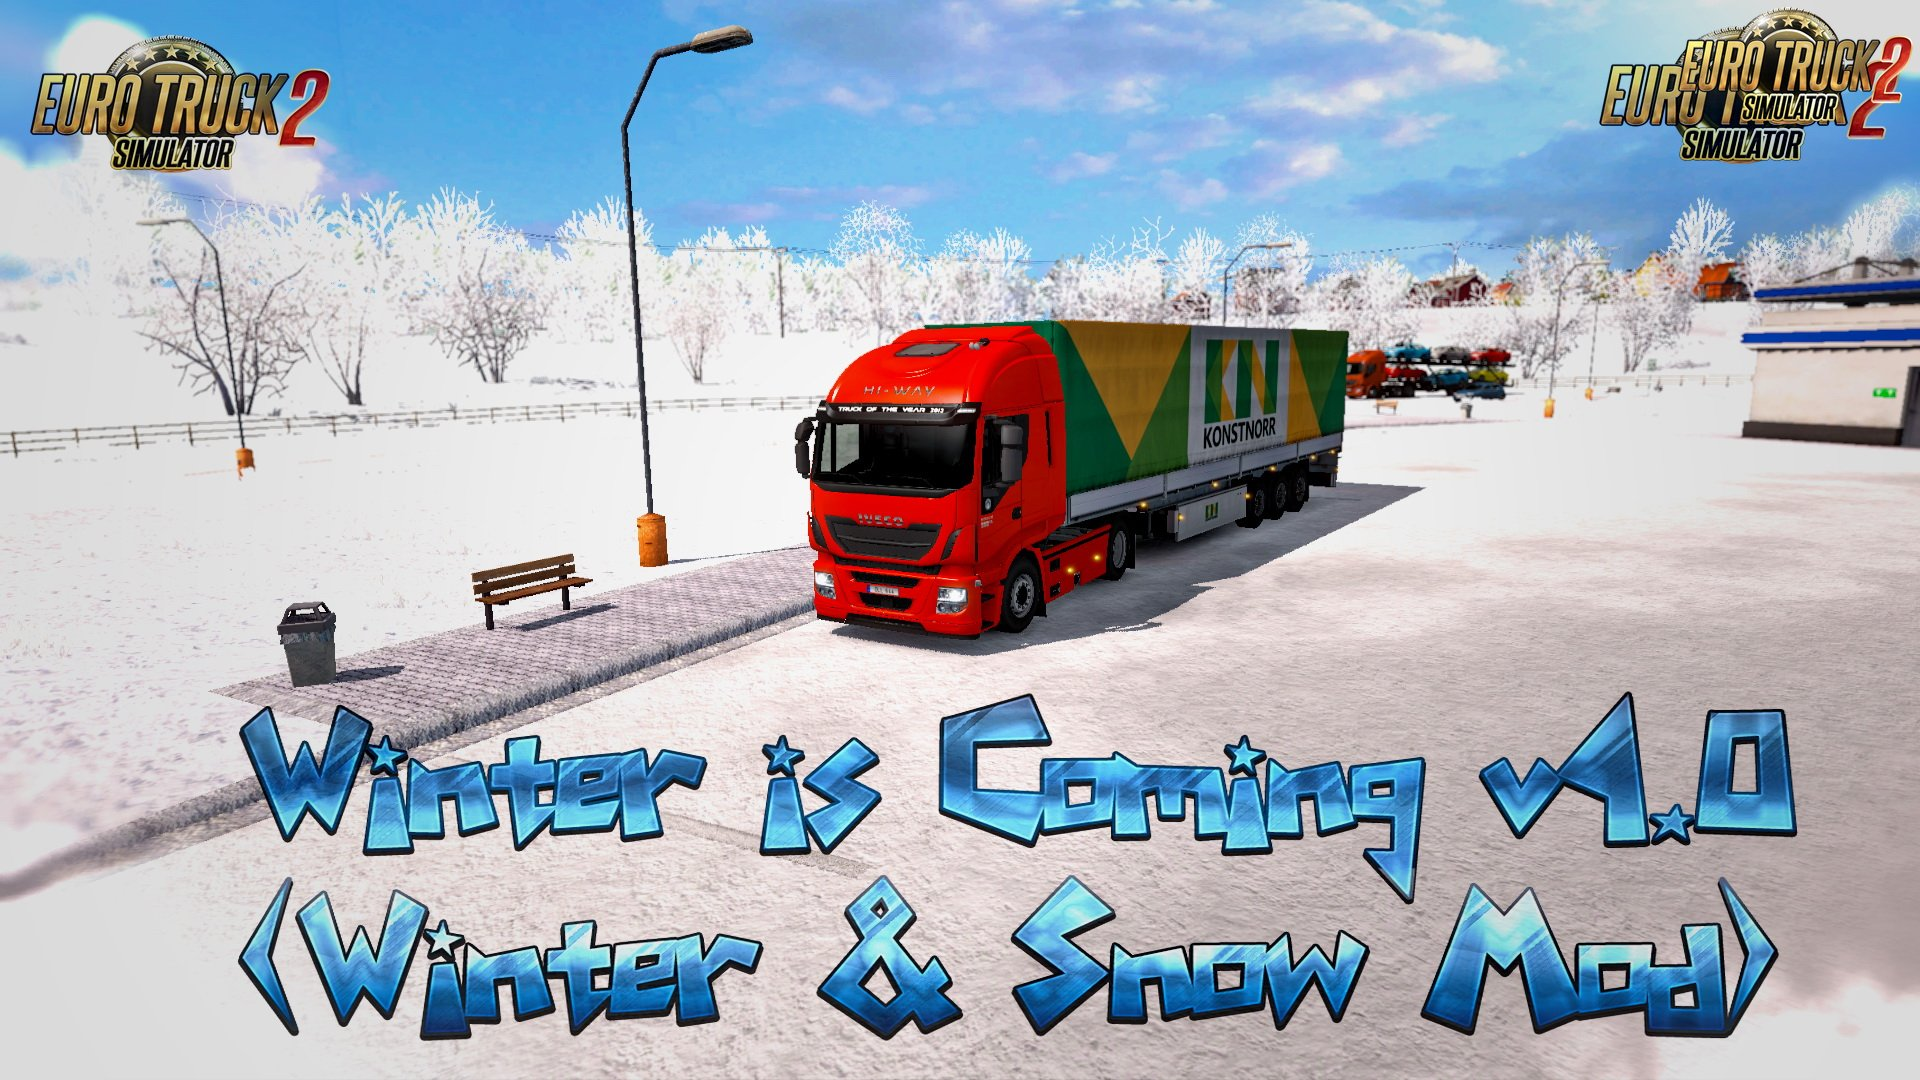 Winter is Coming v4.0 (Winter & Snow Mod) (1.25.x)